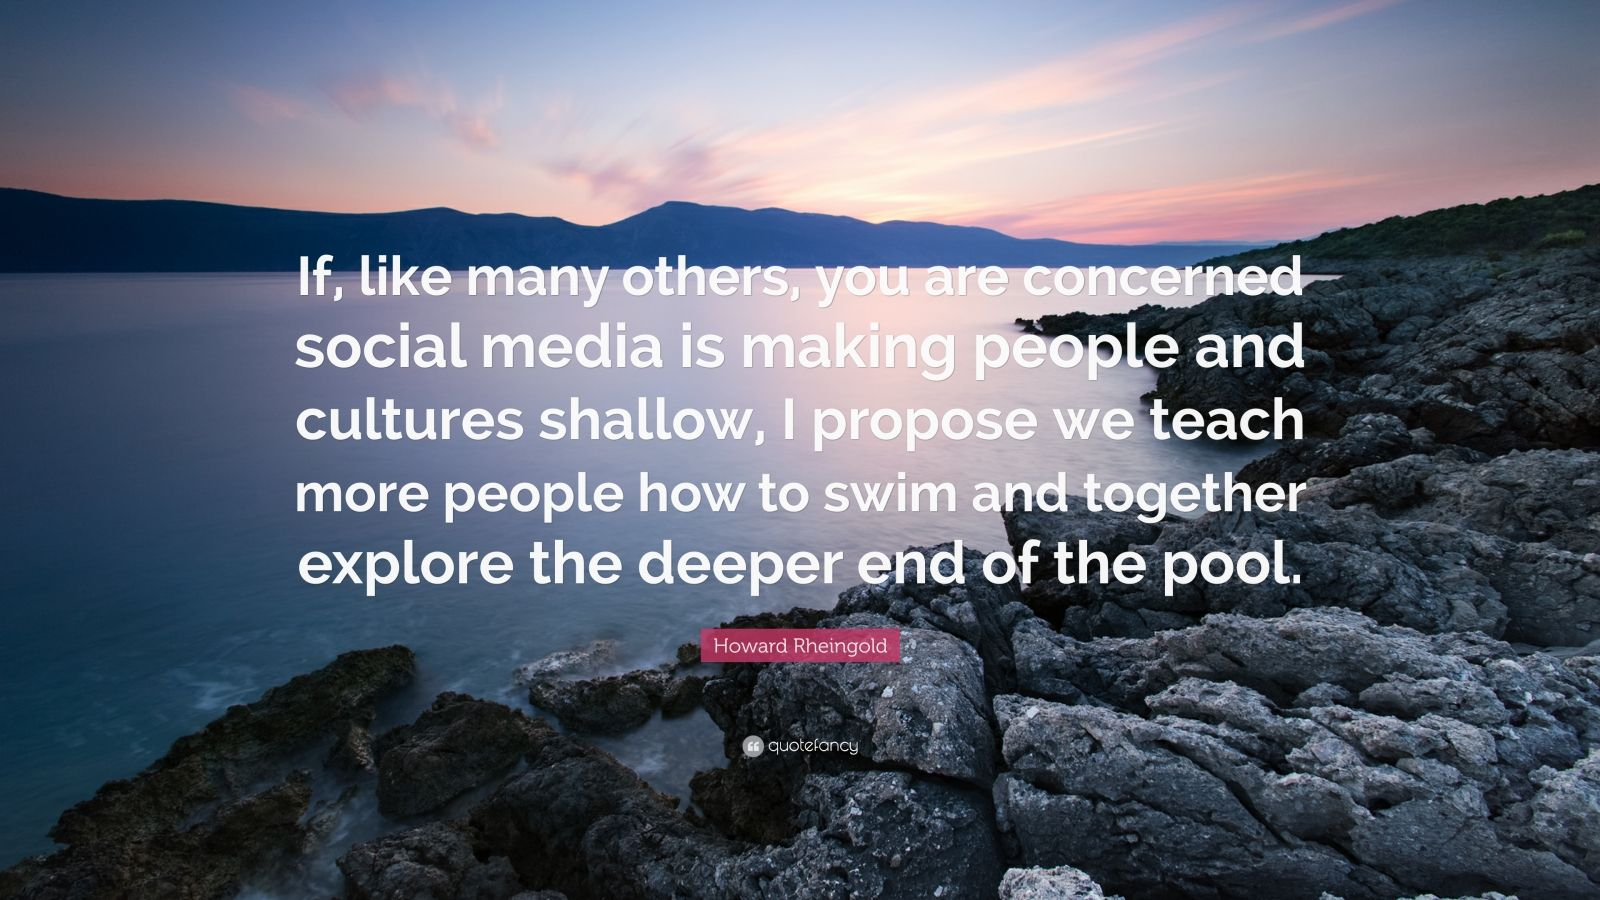 """Howard Rheingold Quote: """"If, like many others, you are concerned social media is making people and cultures shallow, I propose we teach more people how to swim and together explore the deeper end of the pool."""""""